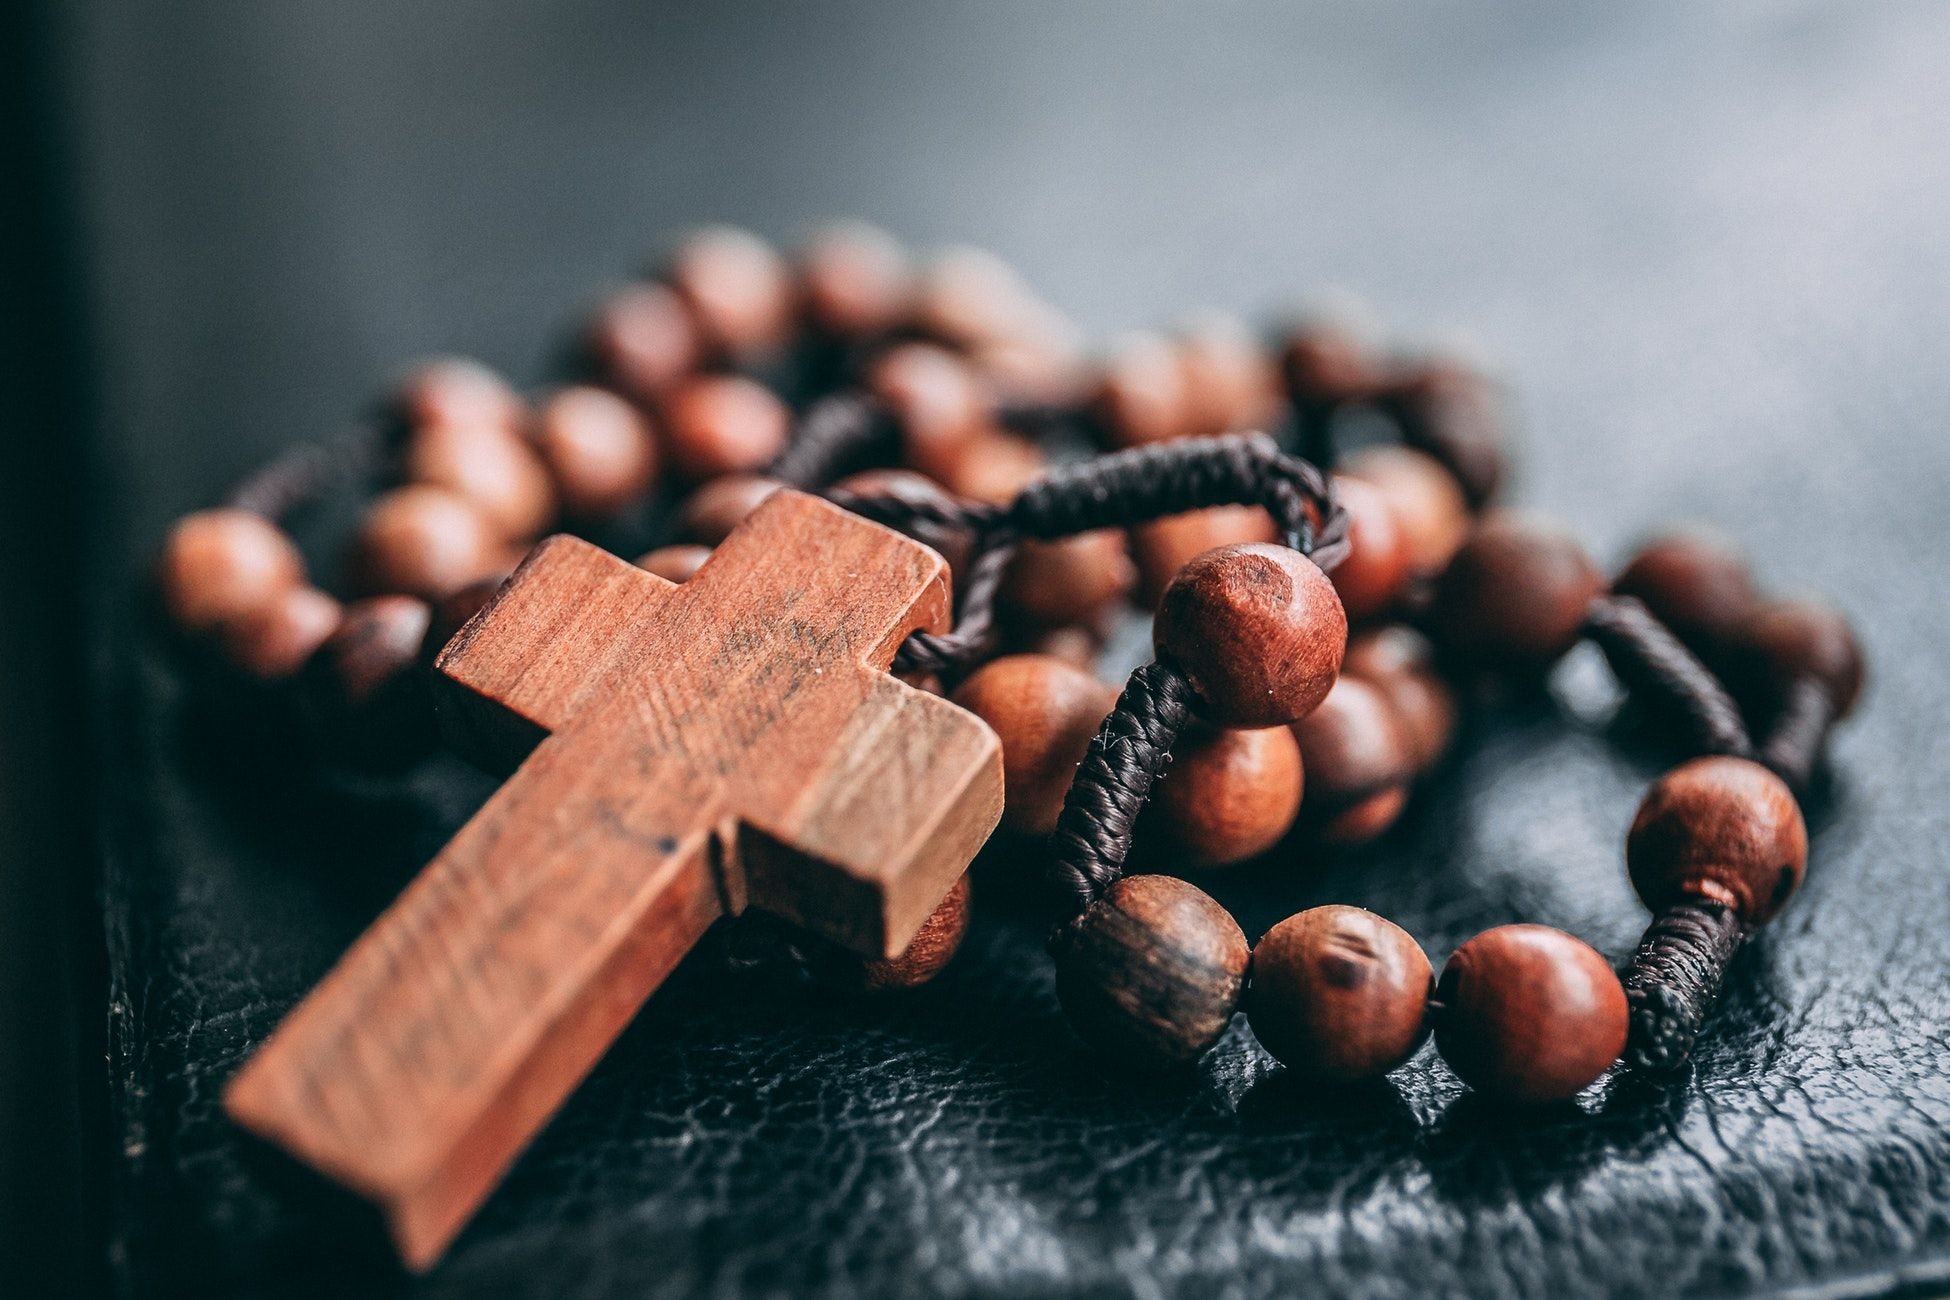 Rosary Hd Photo By James Coleman Jhc On Unsplash With Images